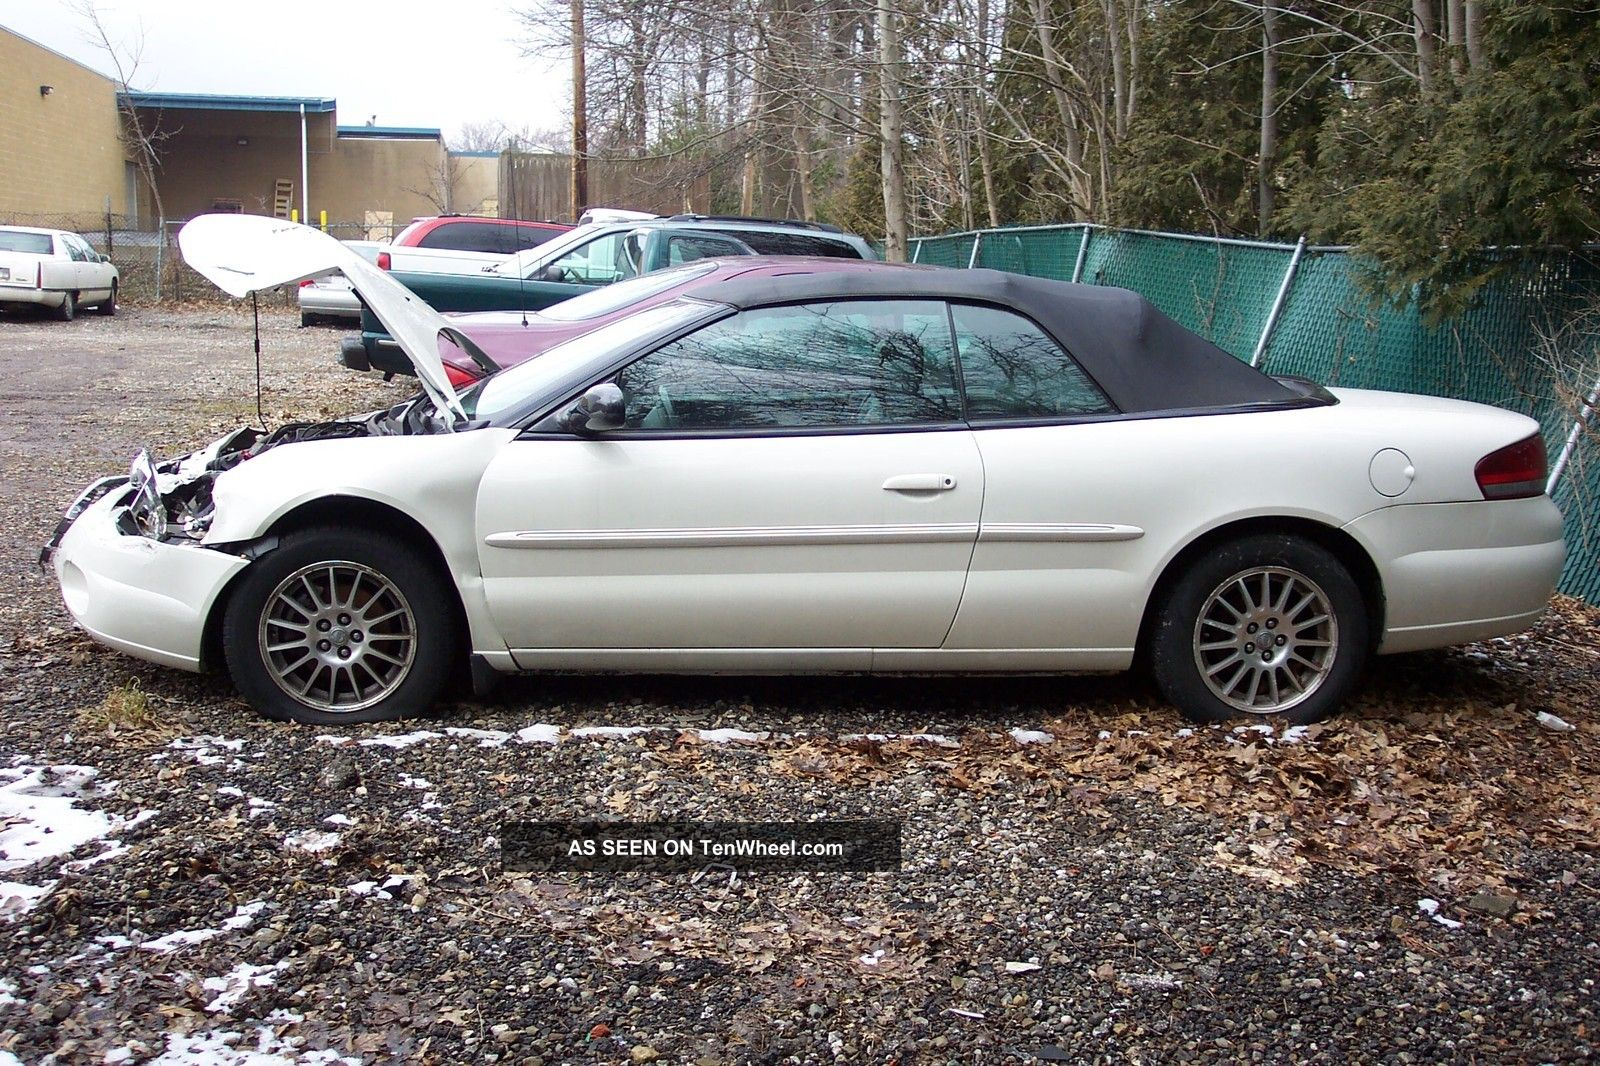 Bodyman Special - - 2004 Chrysler Sebring Lxi Convertible Sebring photo